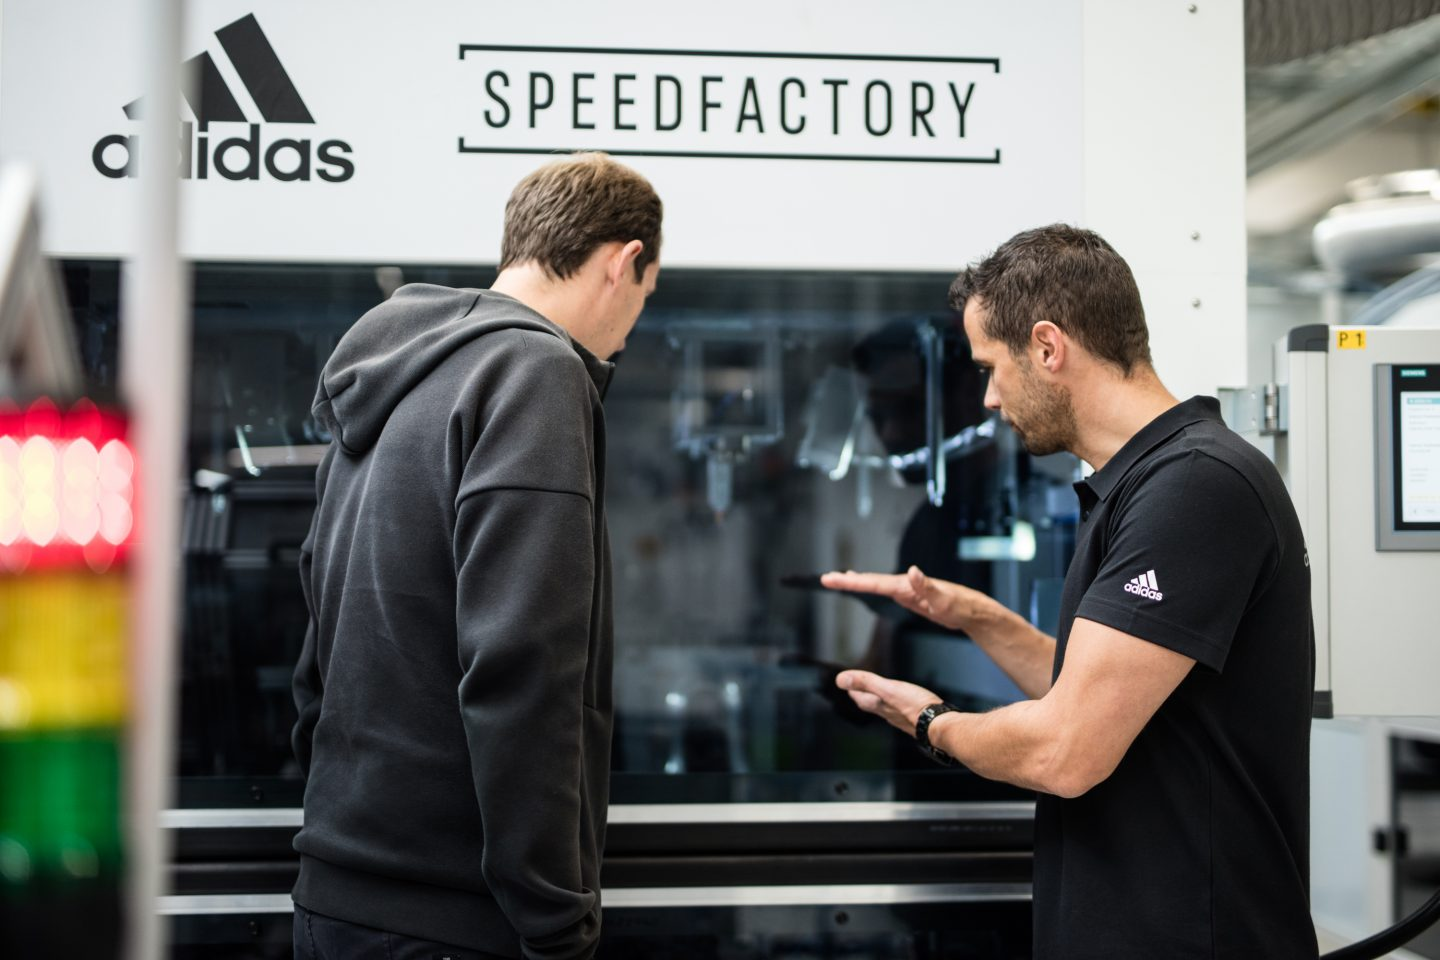 The adidas SPEEDFACTORY Story – An All-Star Partnership